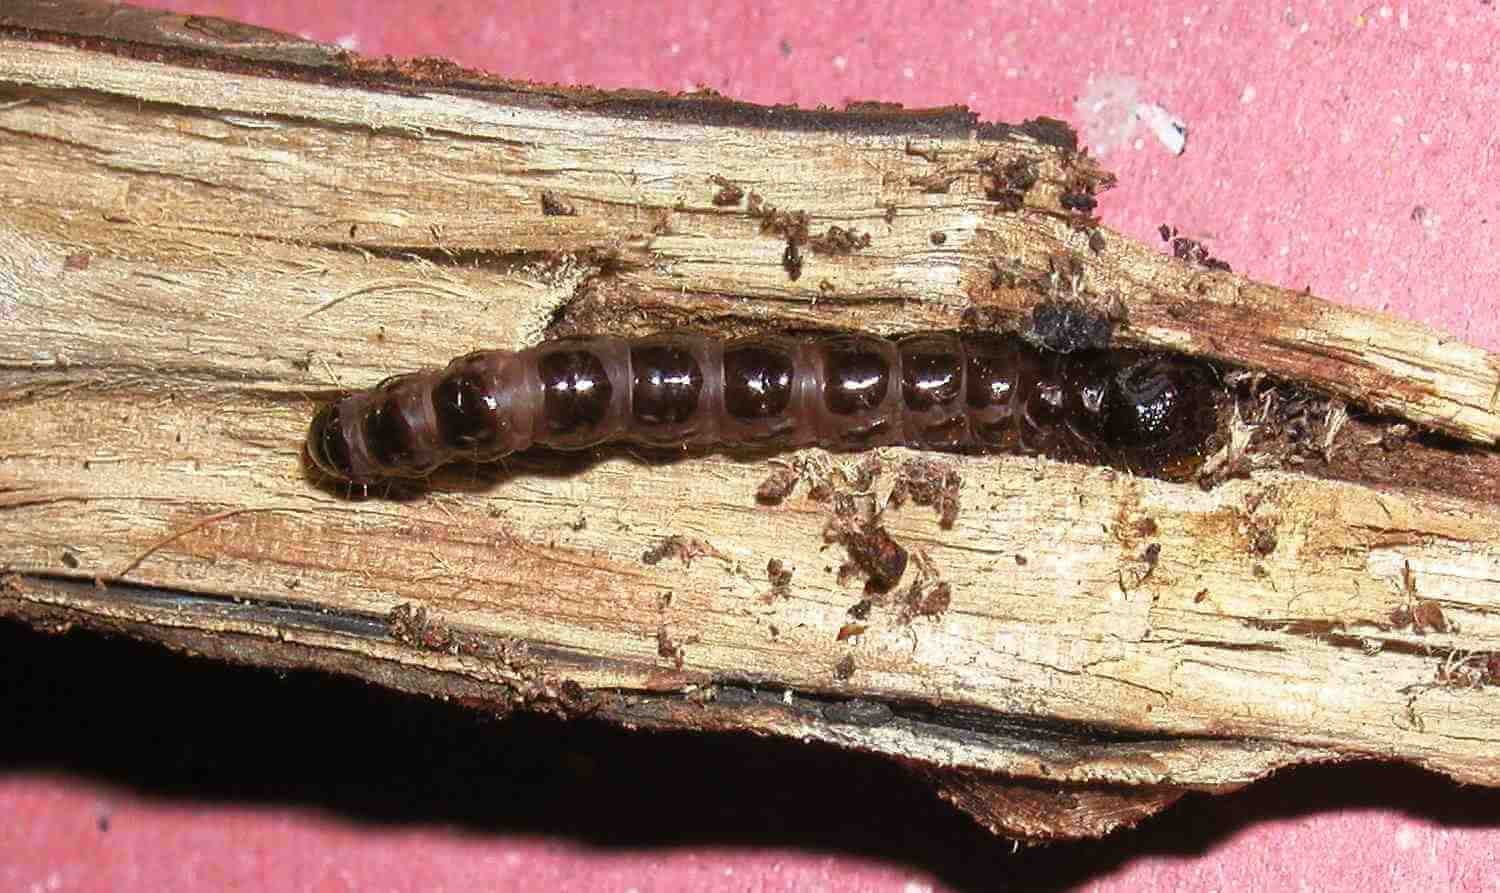 caterpillar that lives and feeds on the plant stems and branches